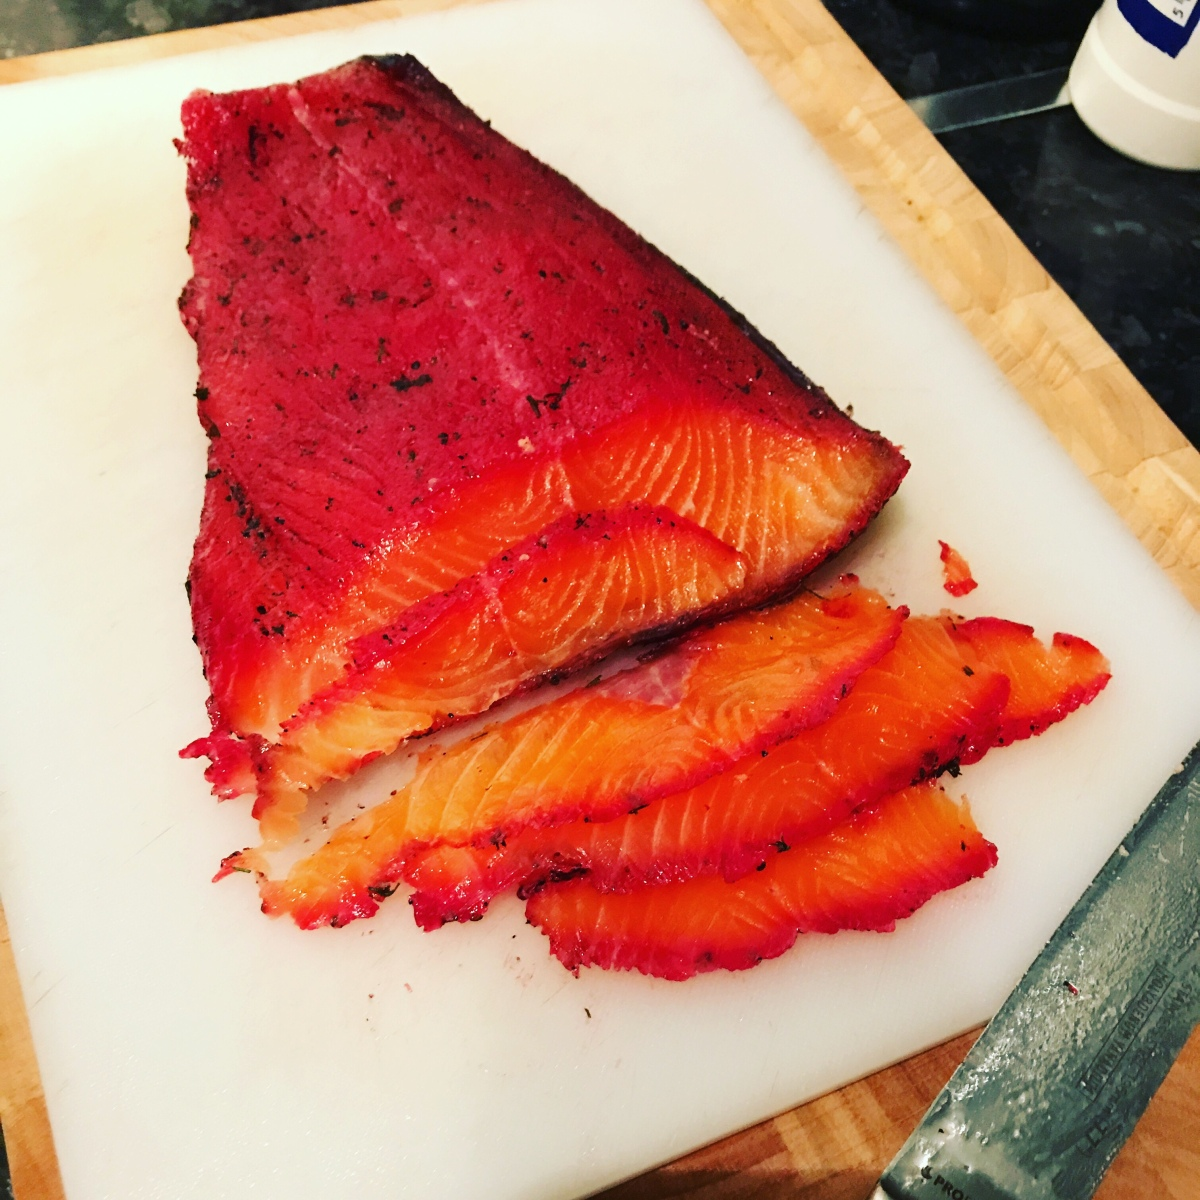 Beetroot and dill curedsalmon